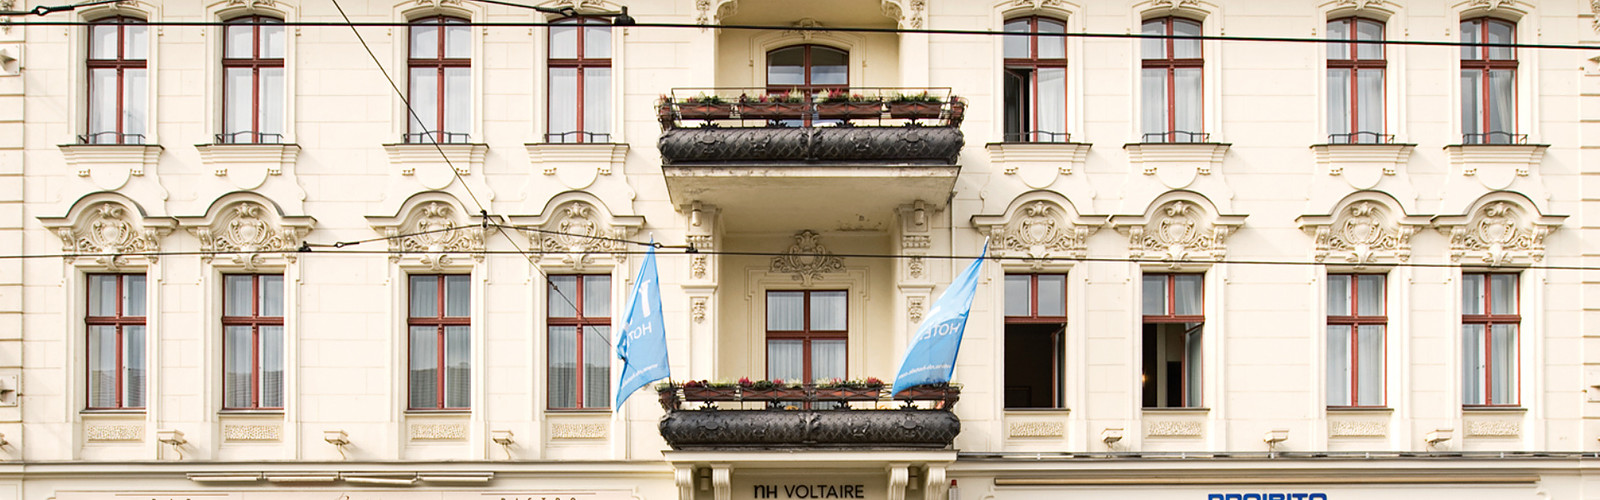 NH Potsdam Hotelansicht (c) NH Hotel Group c/o NH Potsdam Voltaire